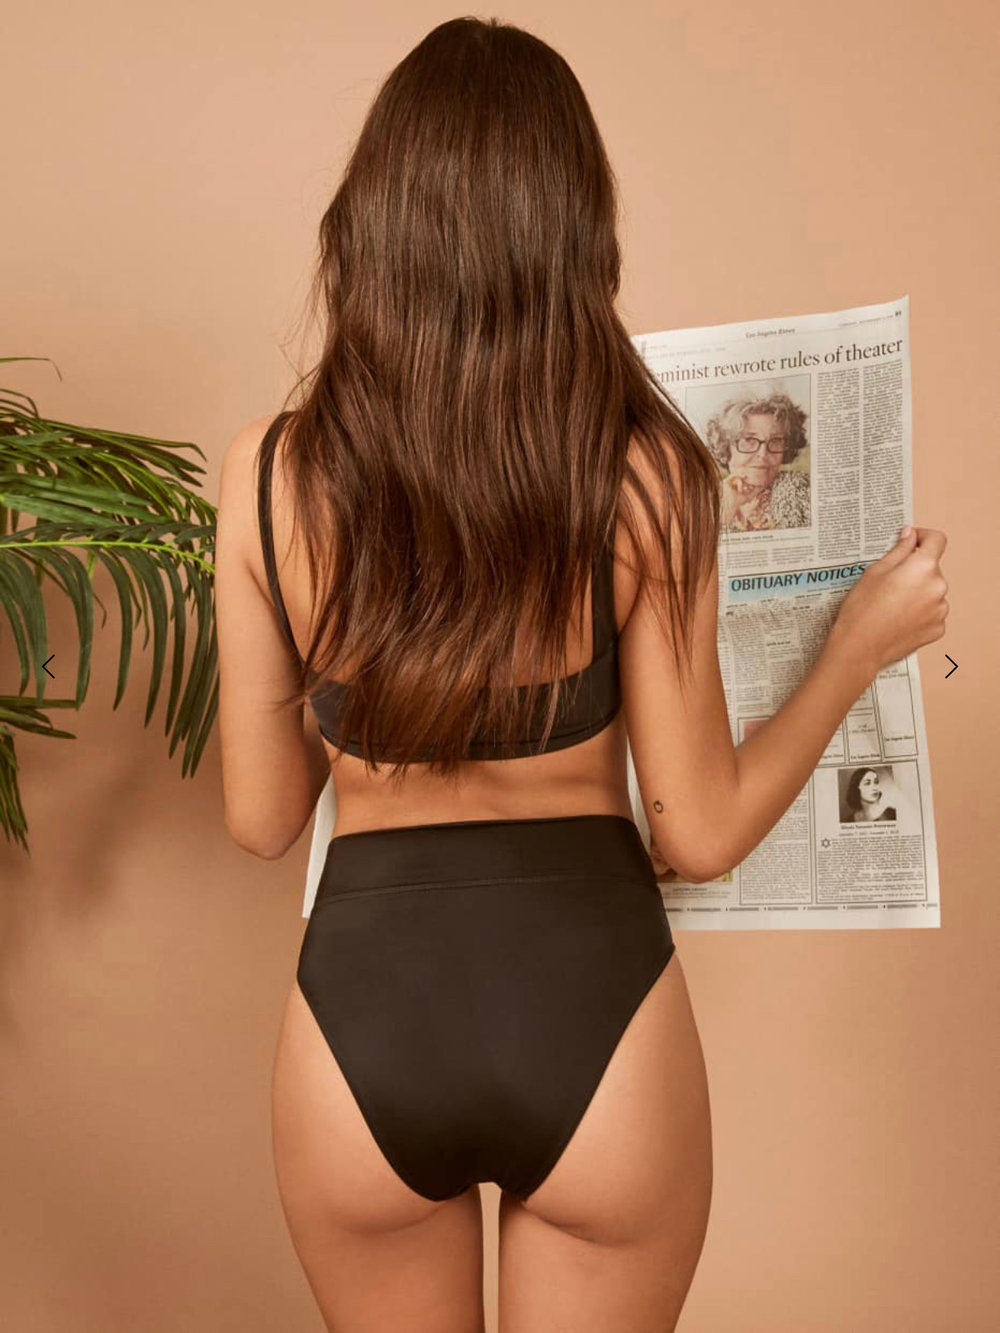 4. Swim Suit - I haven't *quite* decided on style, but I'm pretty sure I'm going with a high-leg black bottom.